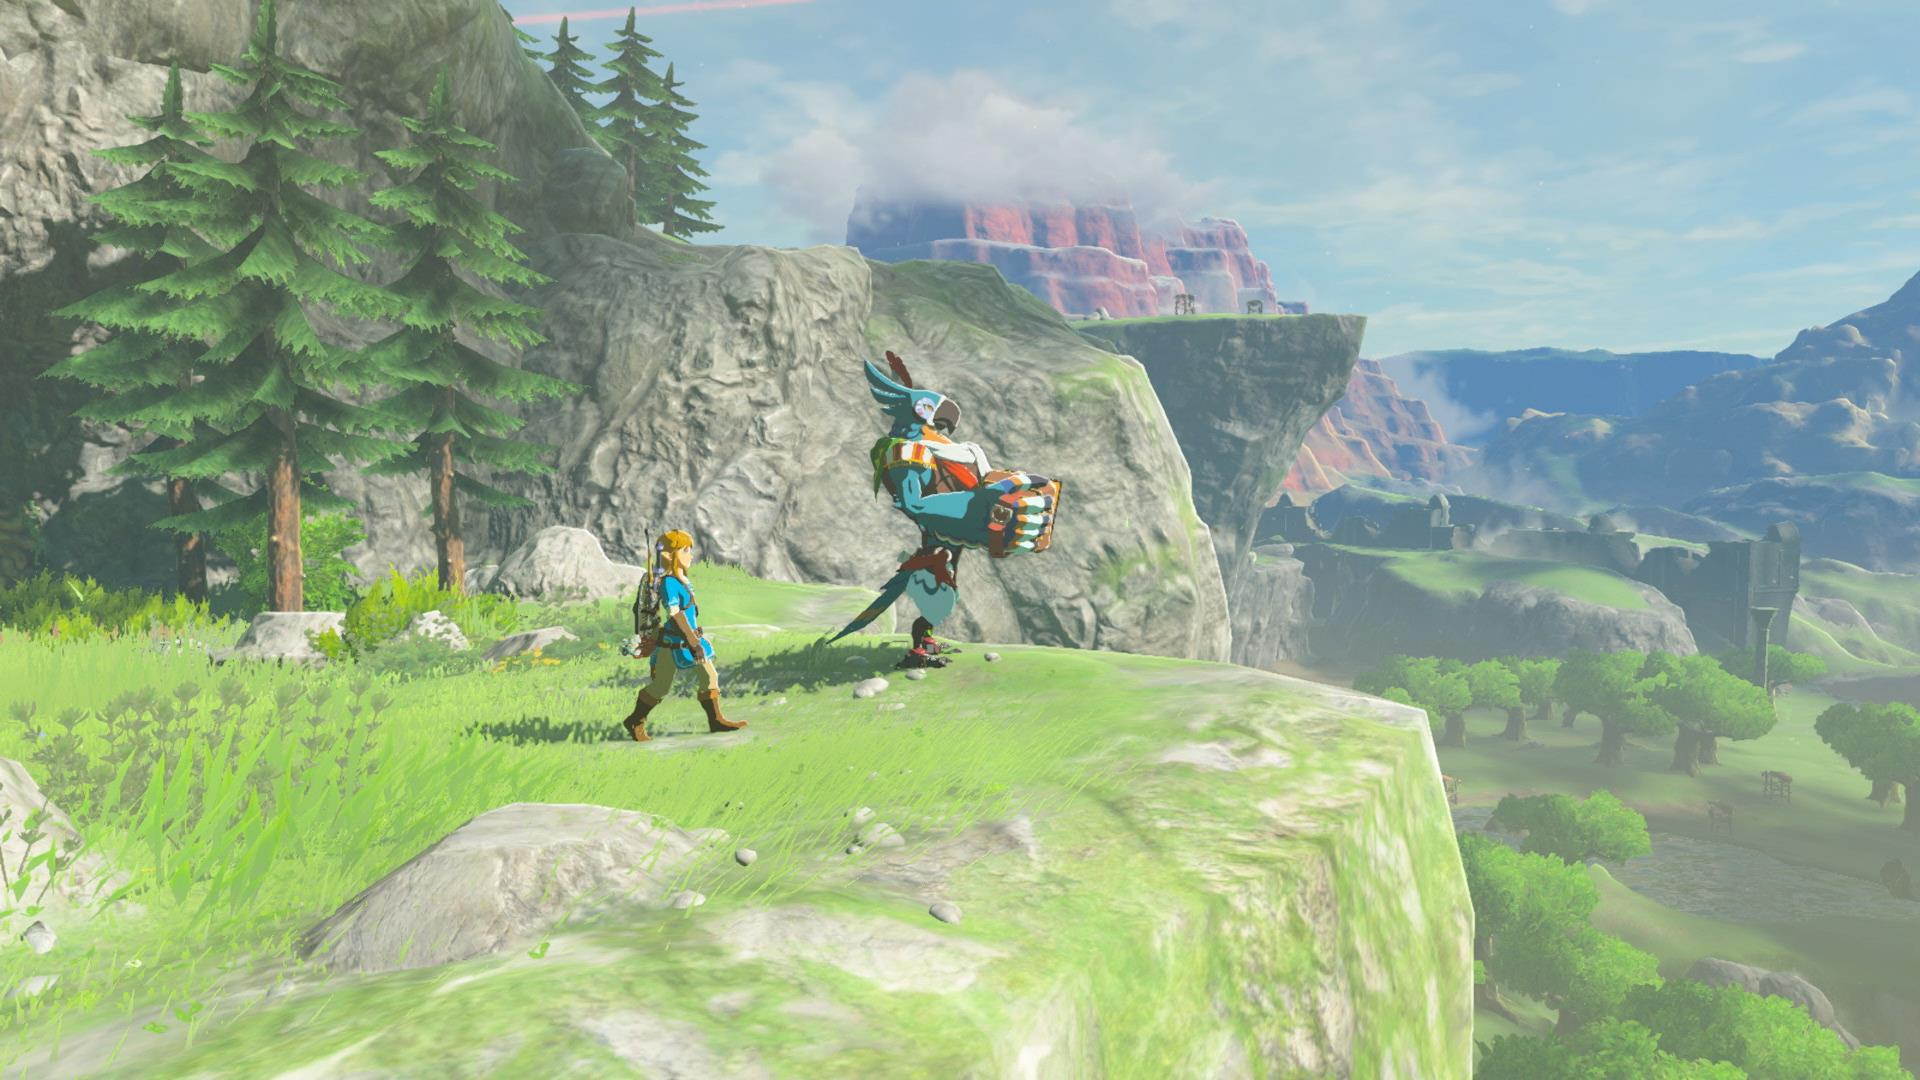 Gaming Like the Old Days: Analyzing the Magic of Breath of the Wild and Super Mario Odyssey